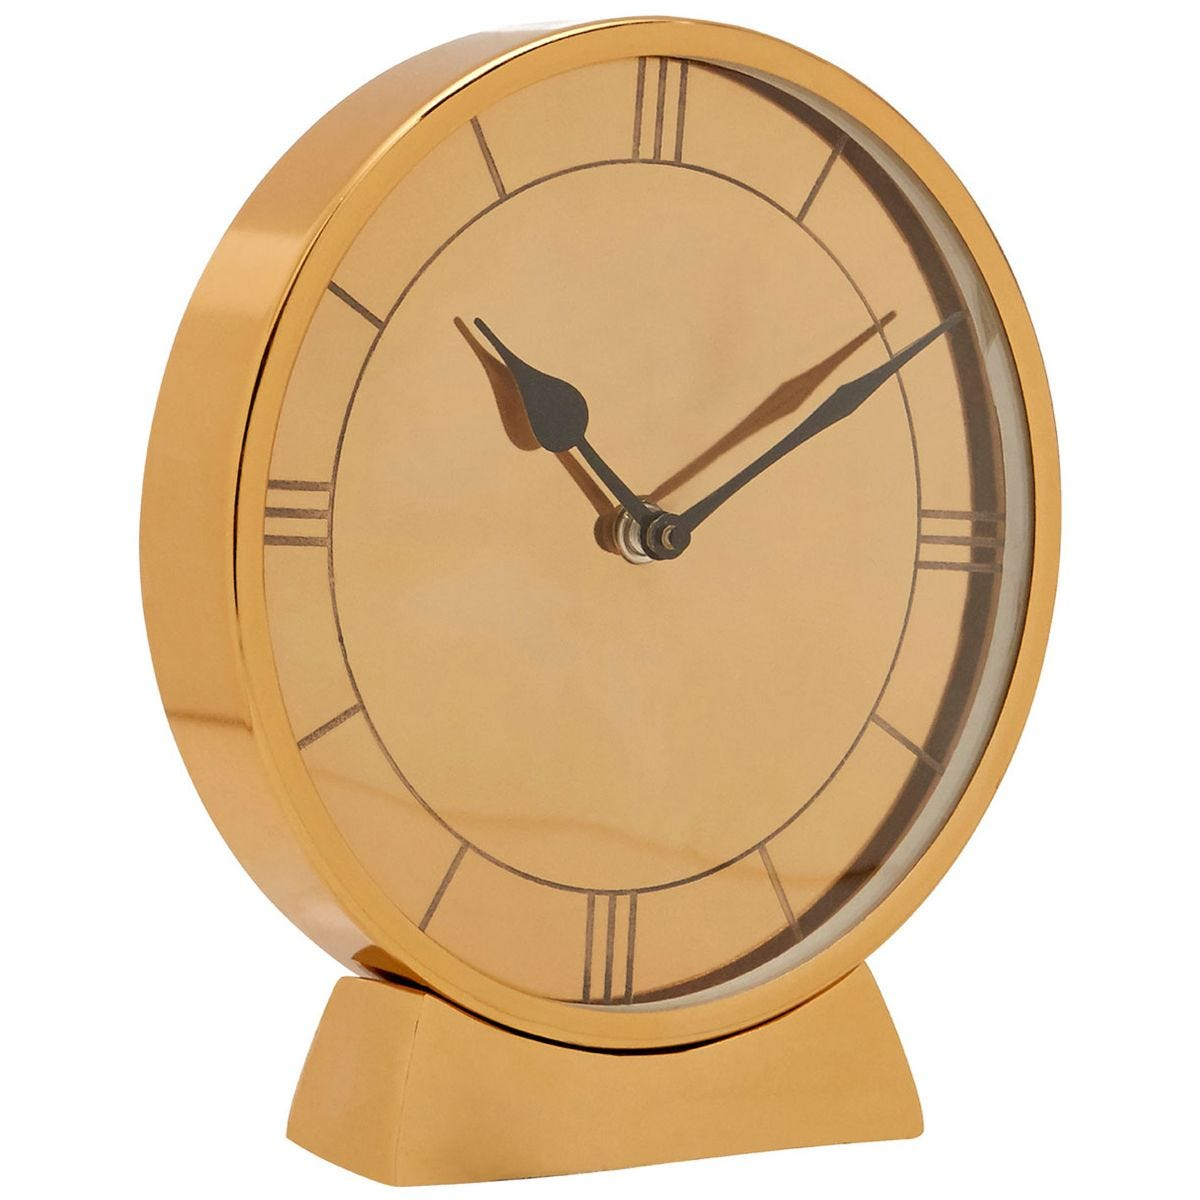 Fifty Five South Kensington Townhouse Round Table Clock - Gold Finish